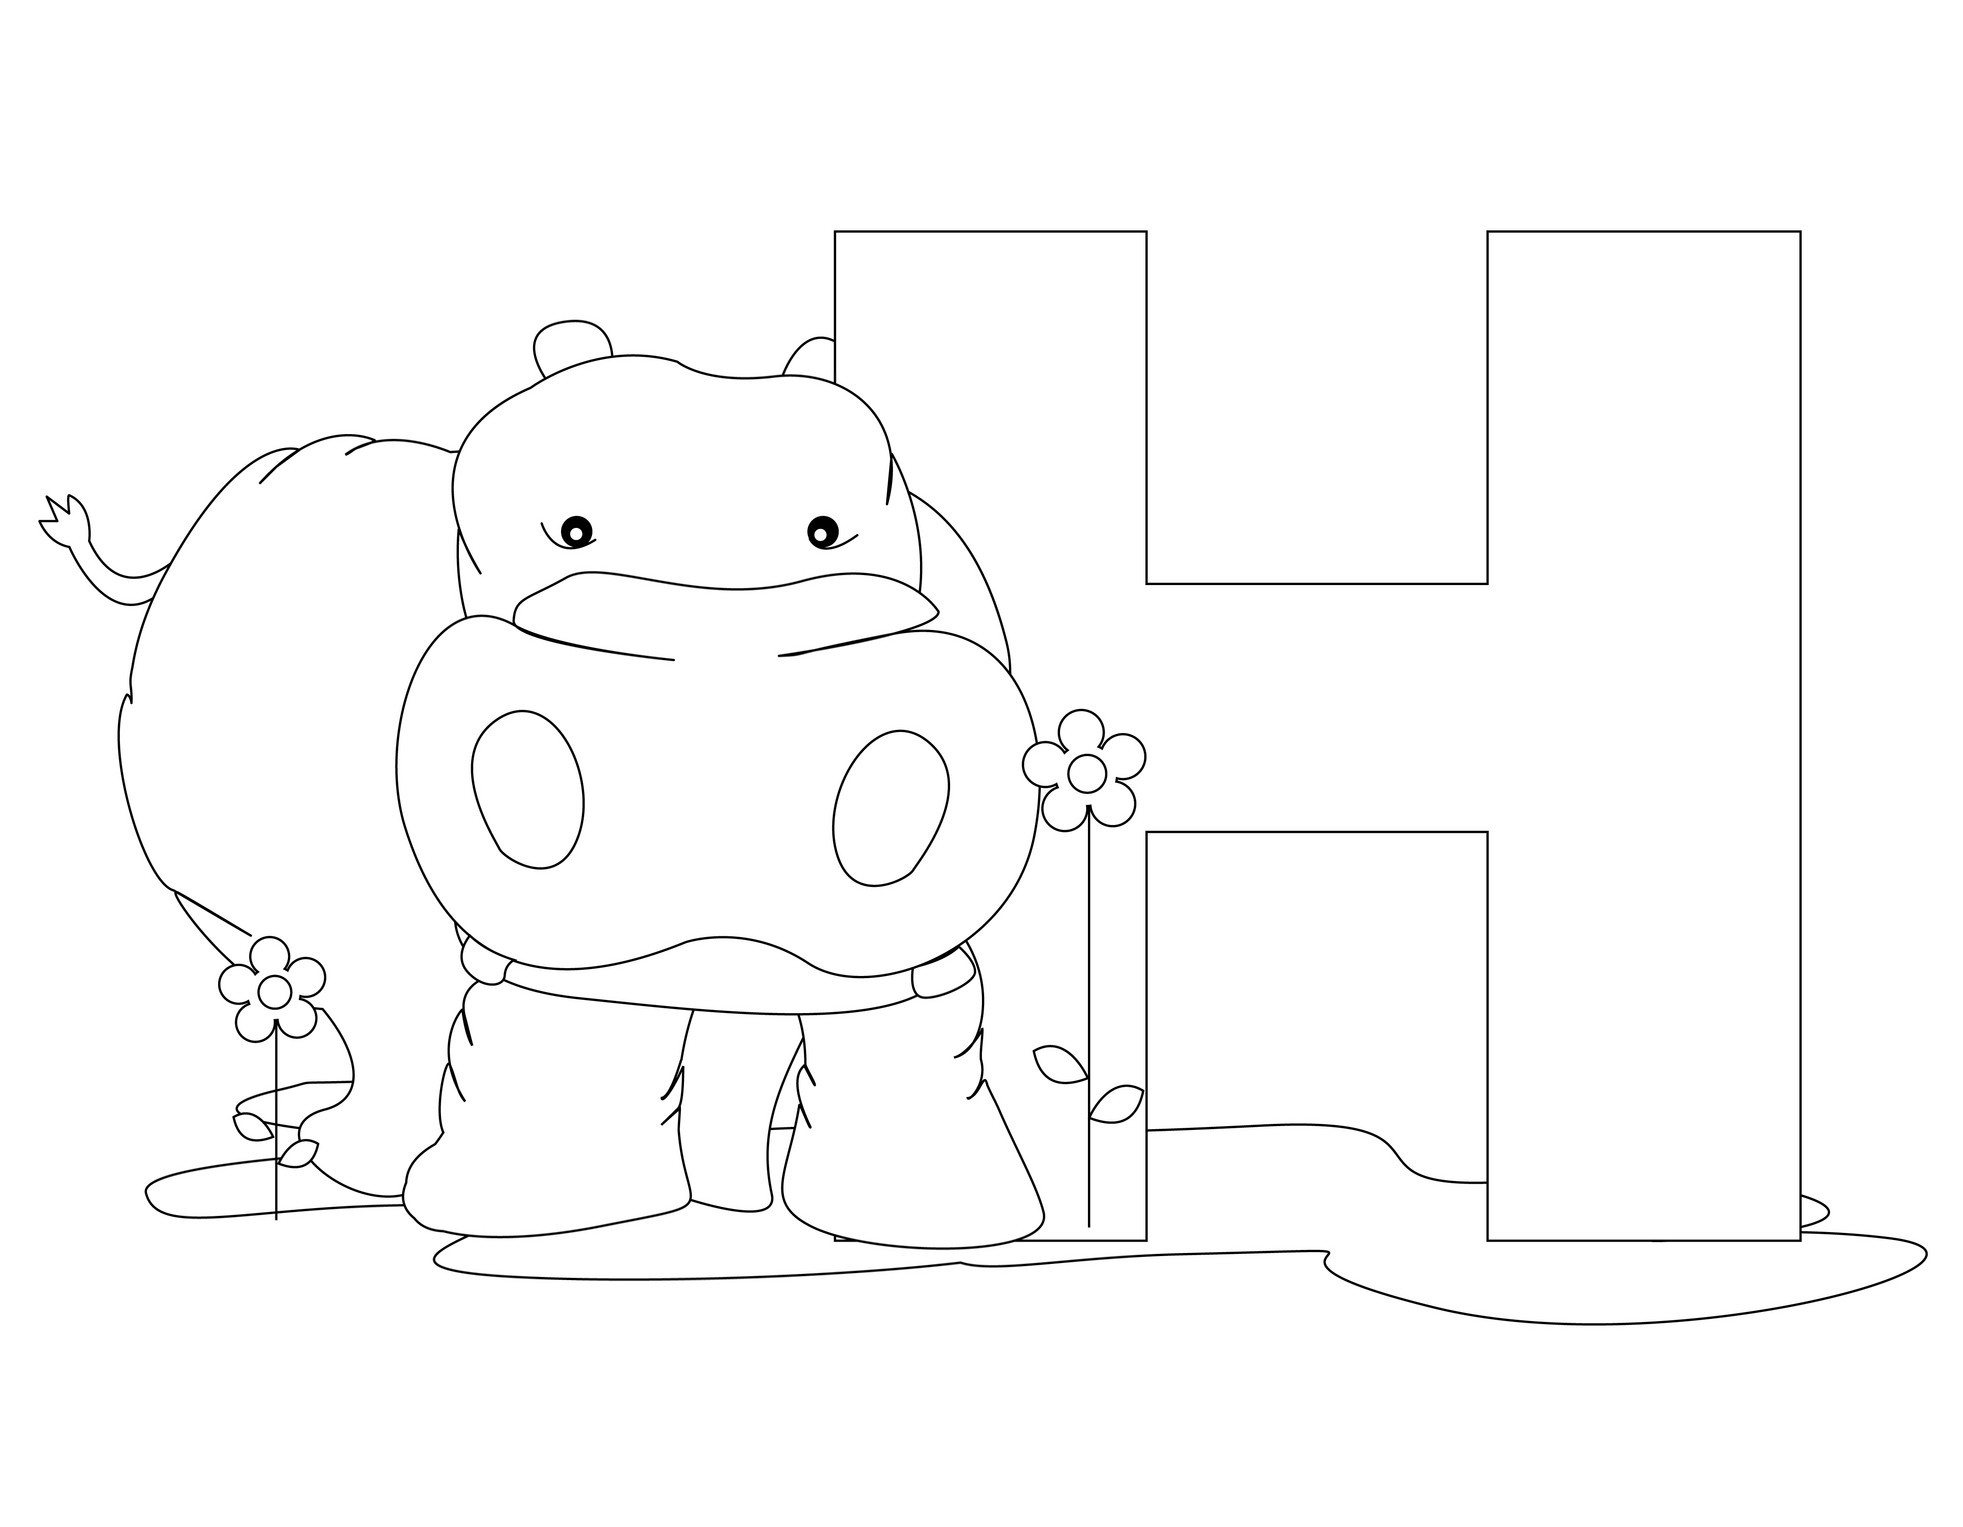 h coloring pages - photo#22